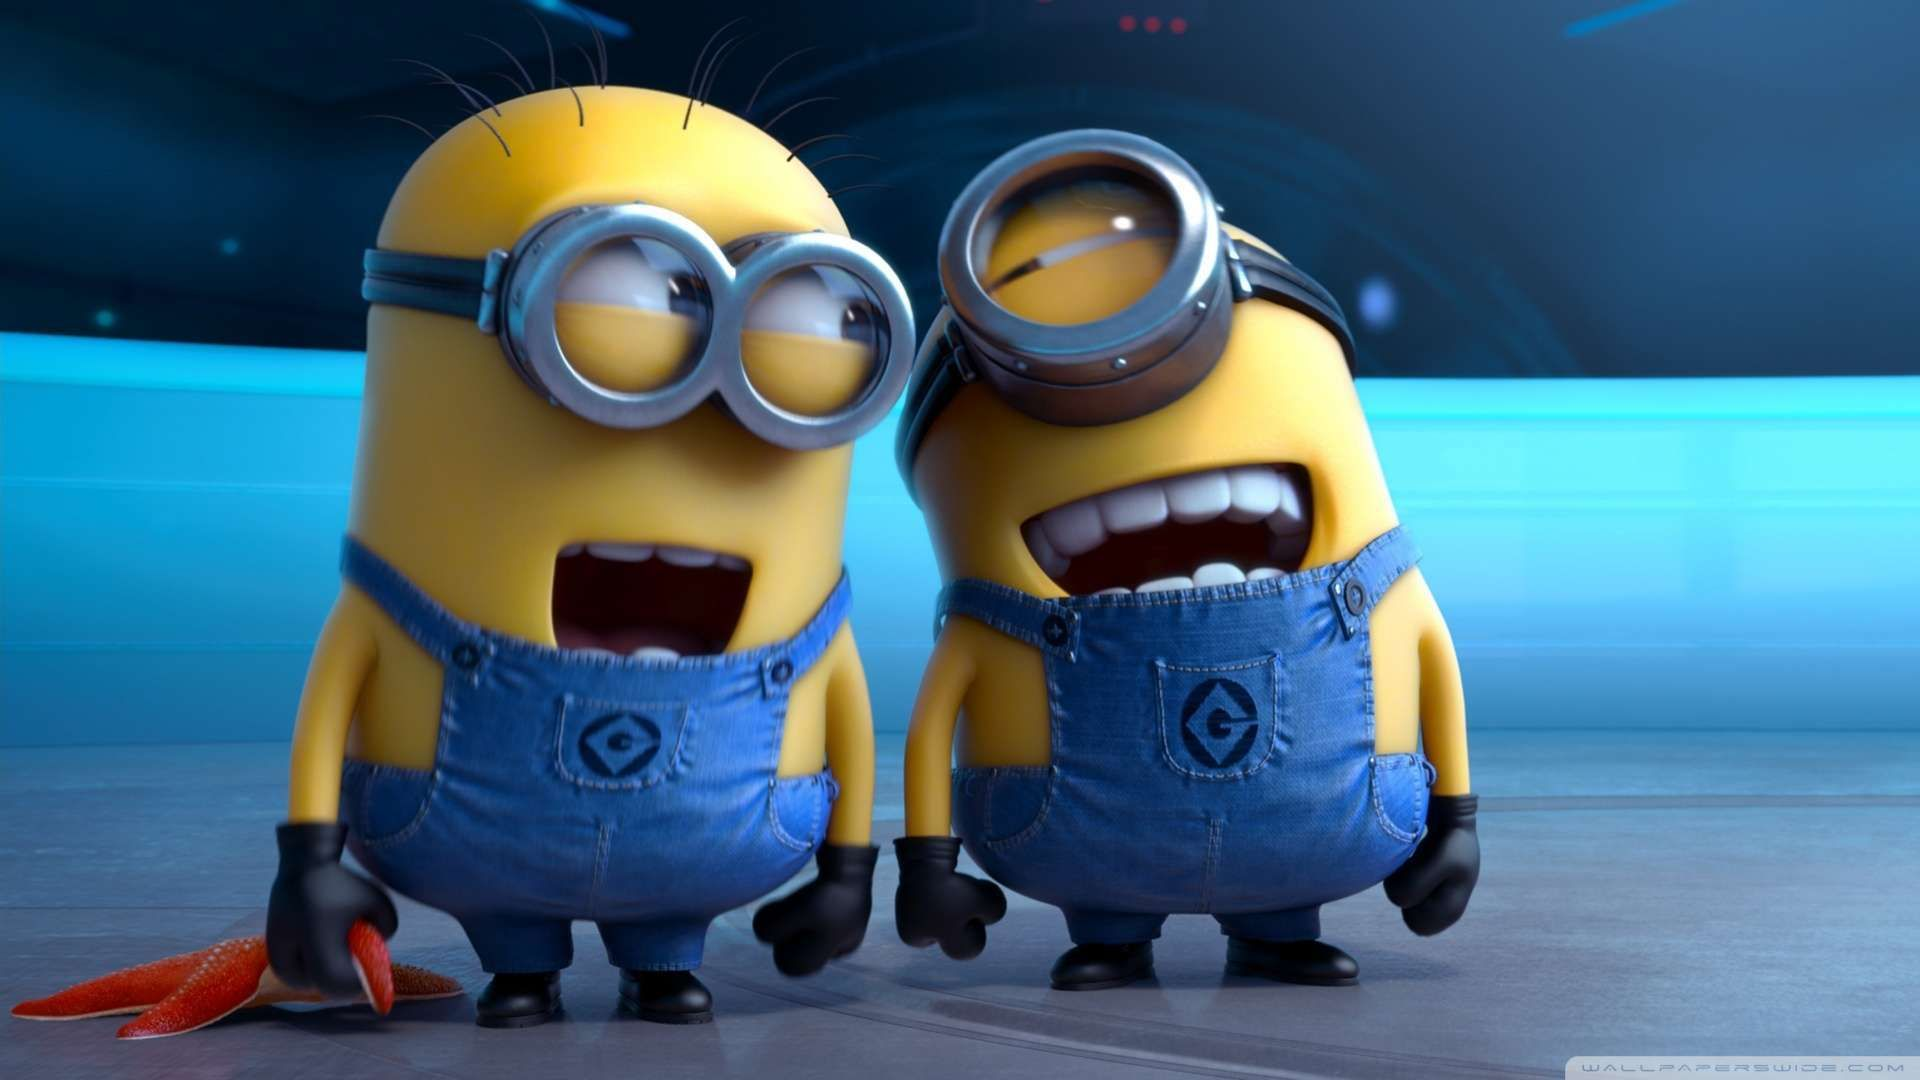 Despicable Me 2 Laughing Minions Wallpaper 1080p Hd Funny Minion Pictures Minions Minion Pictures